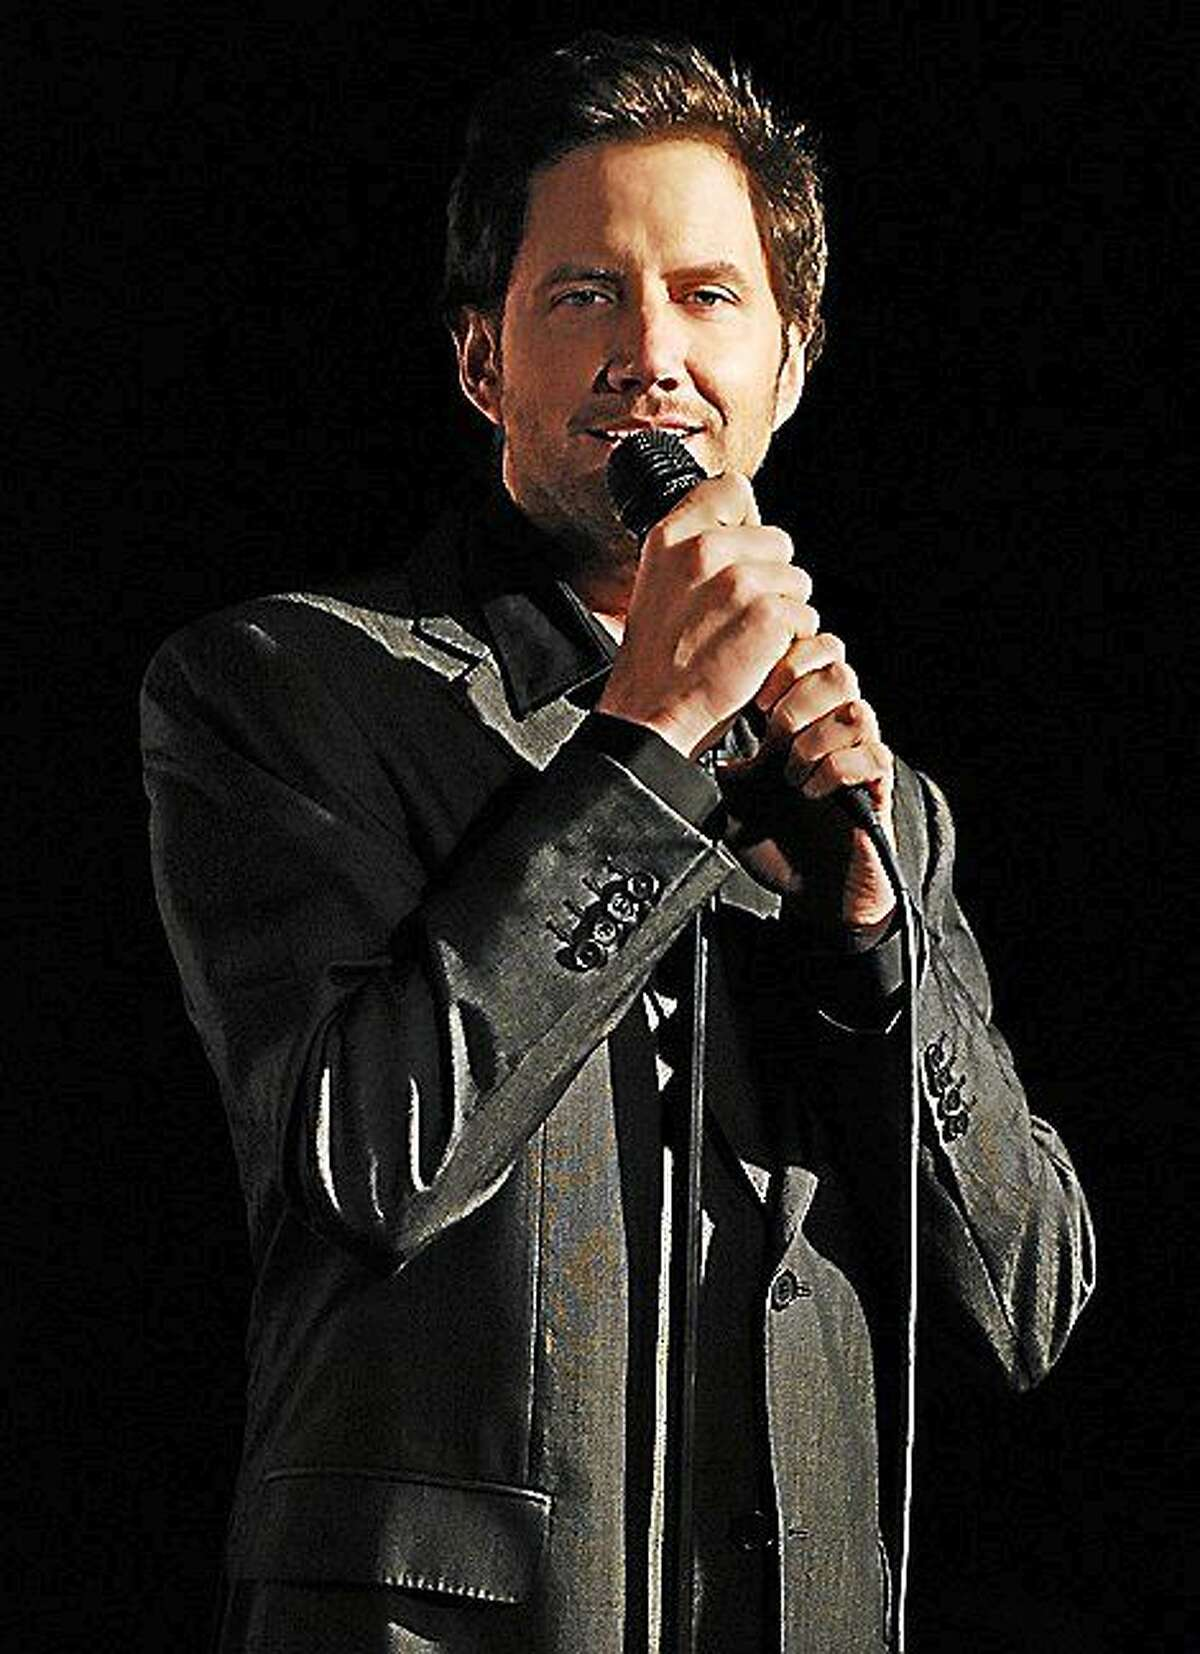 """FOXWOODS RUN: Jamie Kennedy, who was in two """"Scream"""" movies and had his own show on Fox network, not to mention roles in """"As Good As It Gets"""" and """"Three Kings,"""" begins a three-night standup comedy run at the Comix comedy club at Foxwoods Wednesday at 8 p.m. Tickets, $25-$60, are available at www.comixatfoxwoods.com; by calling the box office at 800-200-2882; or in person at the Comix, Fox Theater or Grand Theater box offices."""